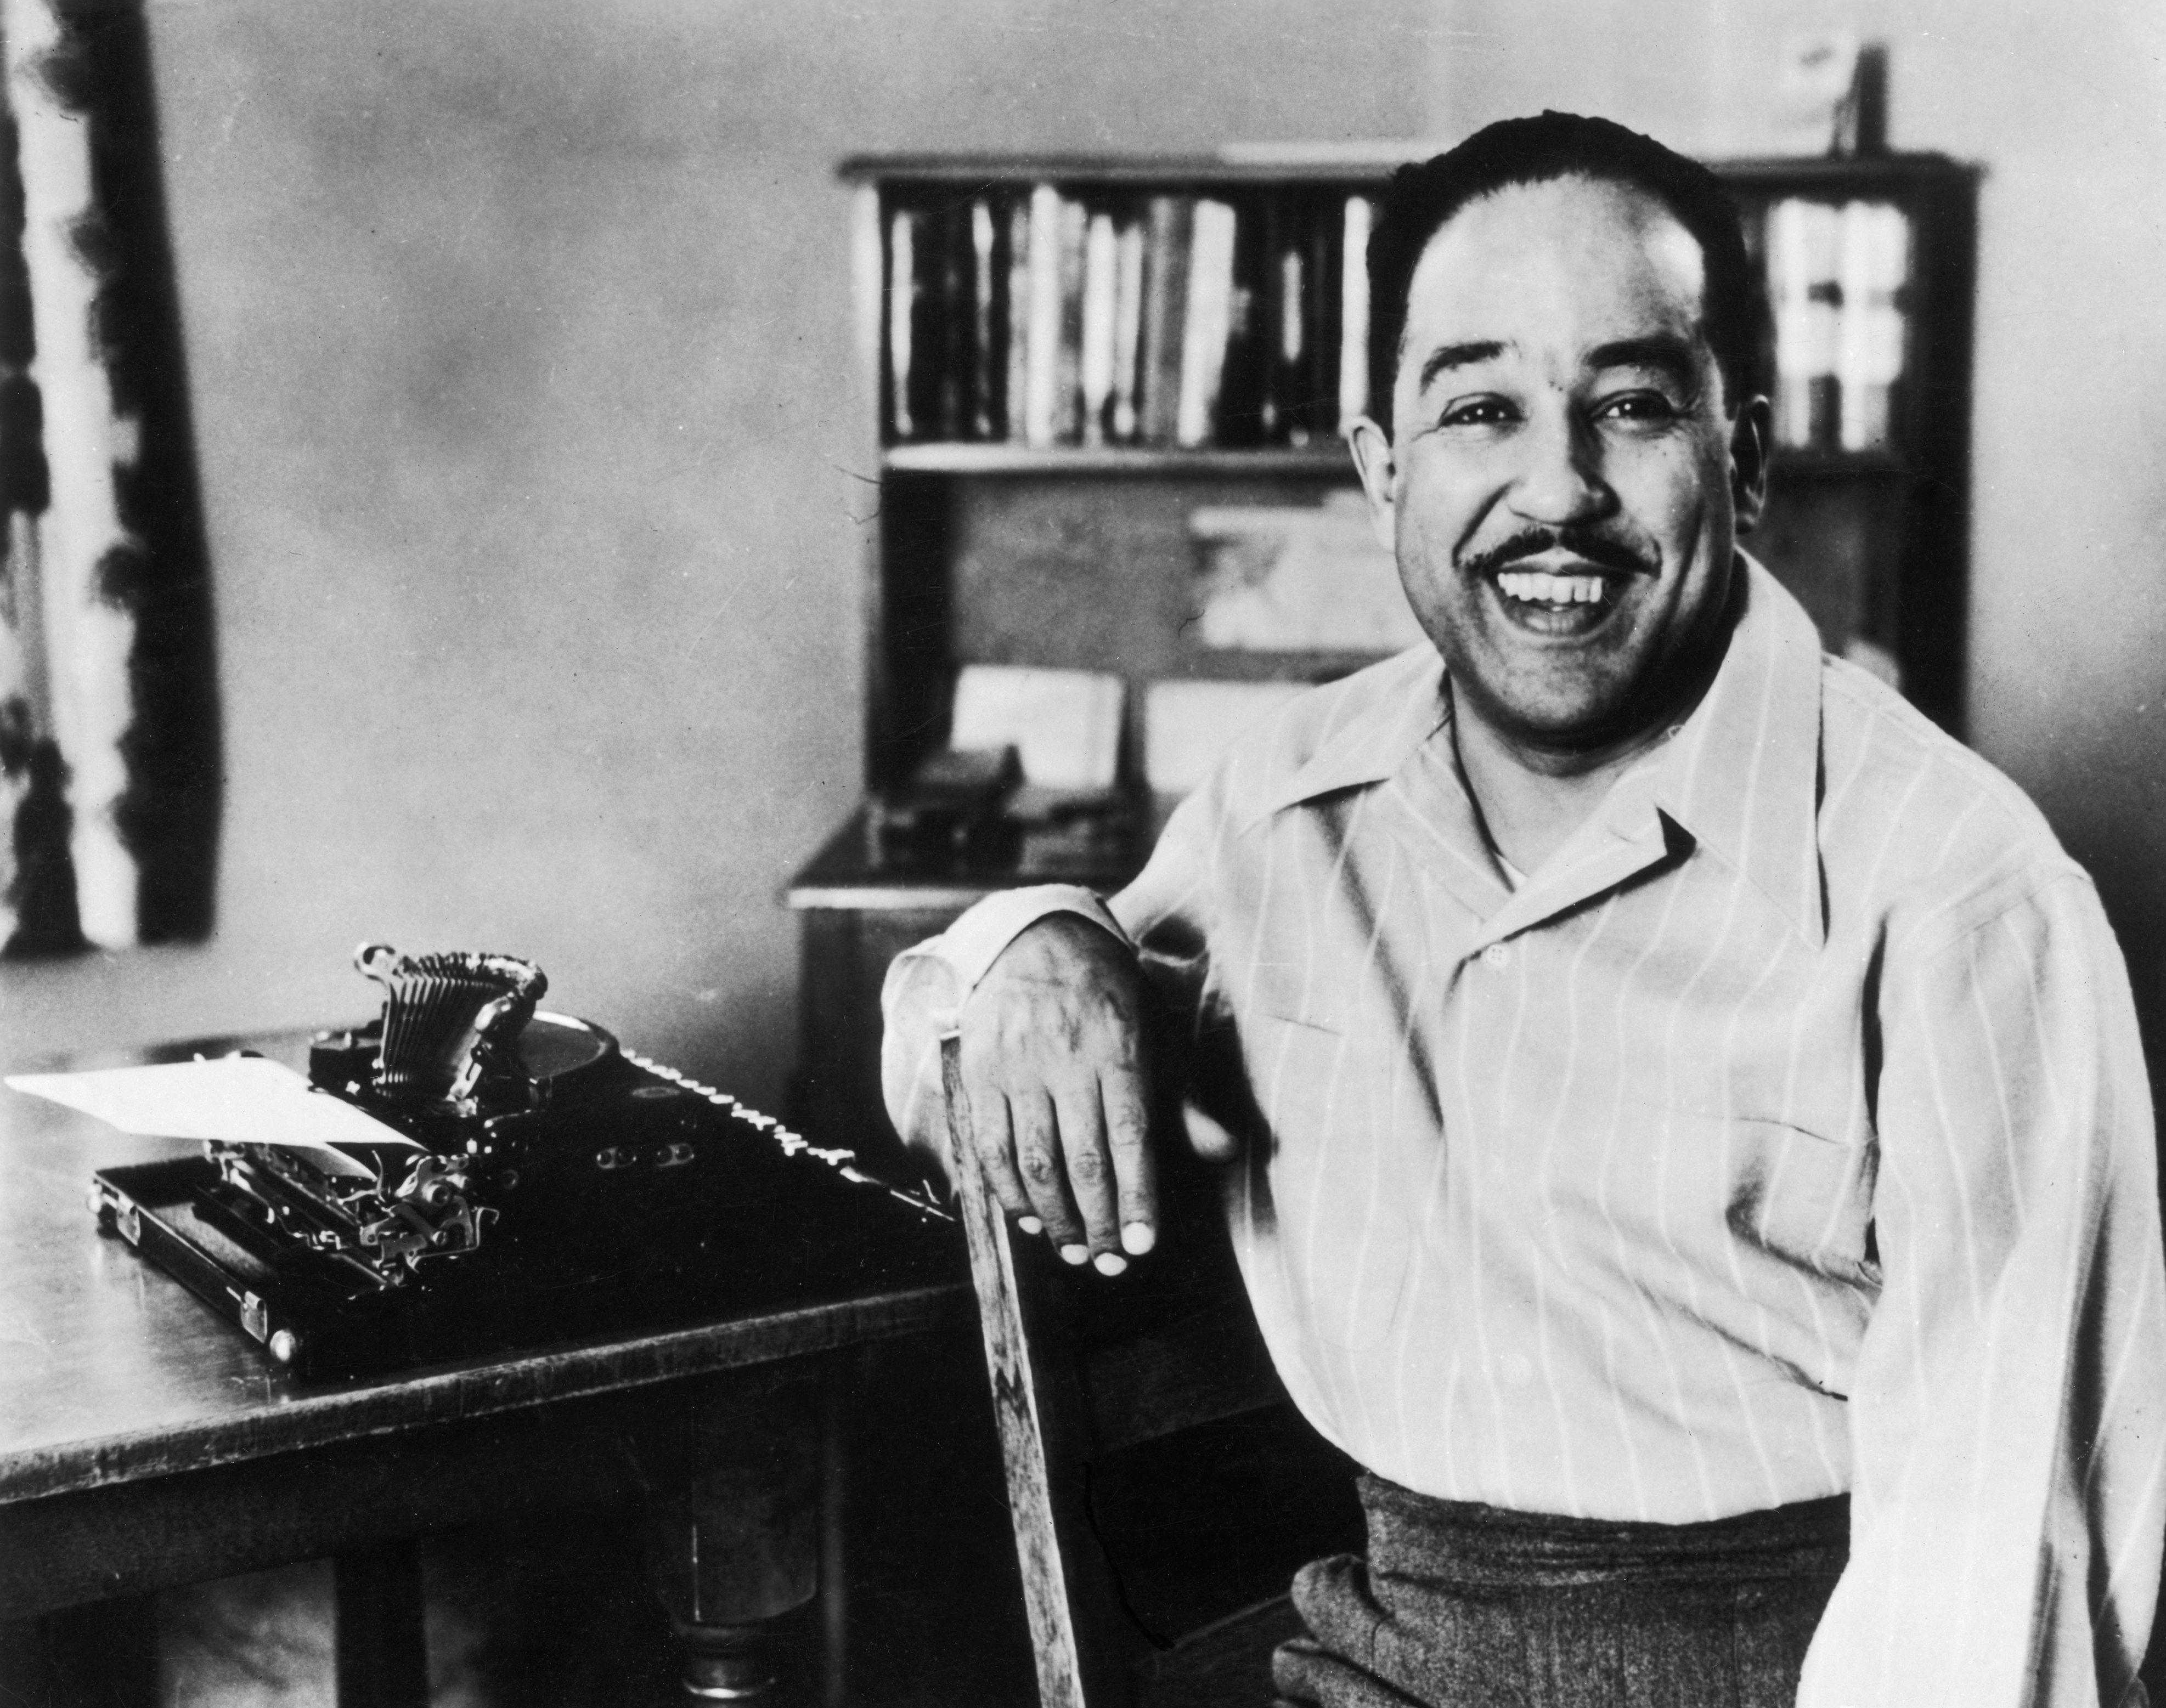 On Langston Hughes's 115th birthday, read his ambivalent ode to America